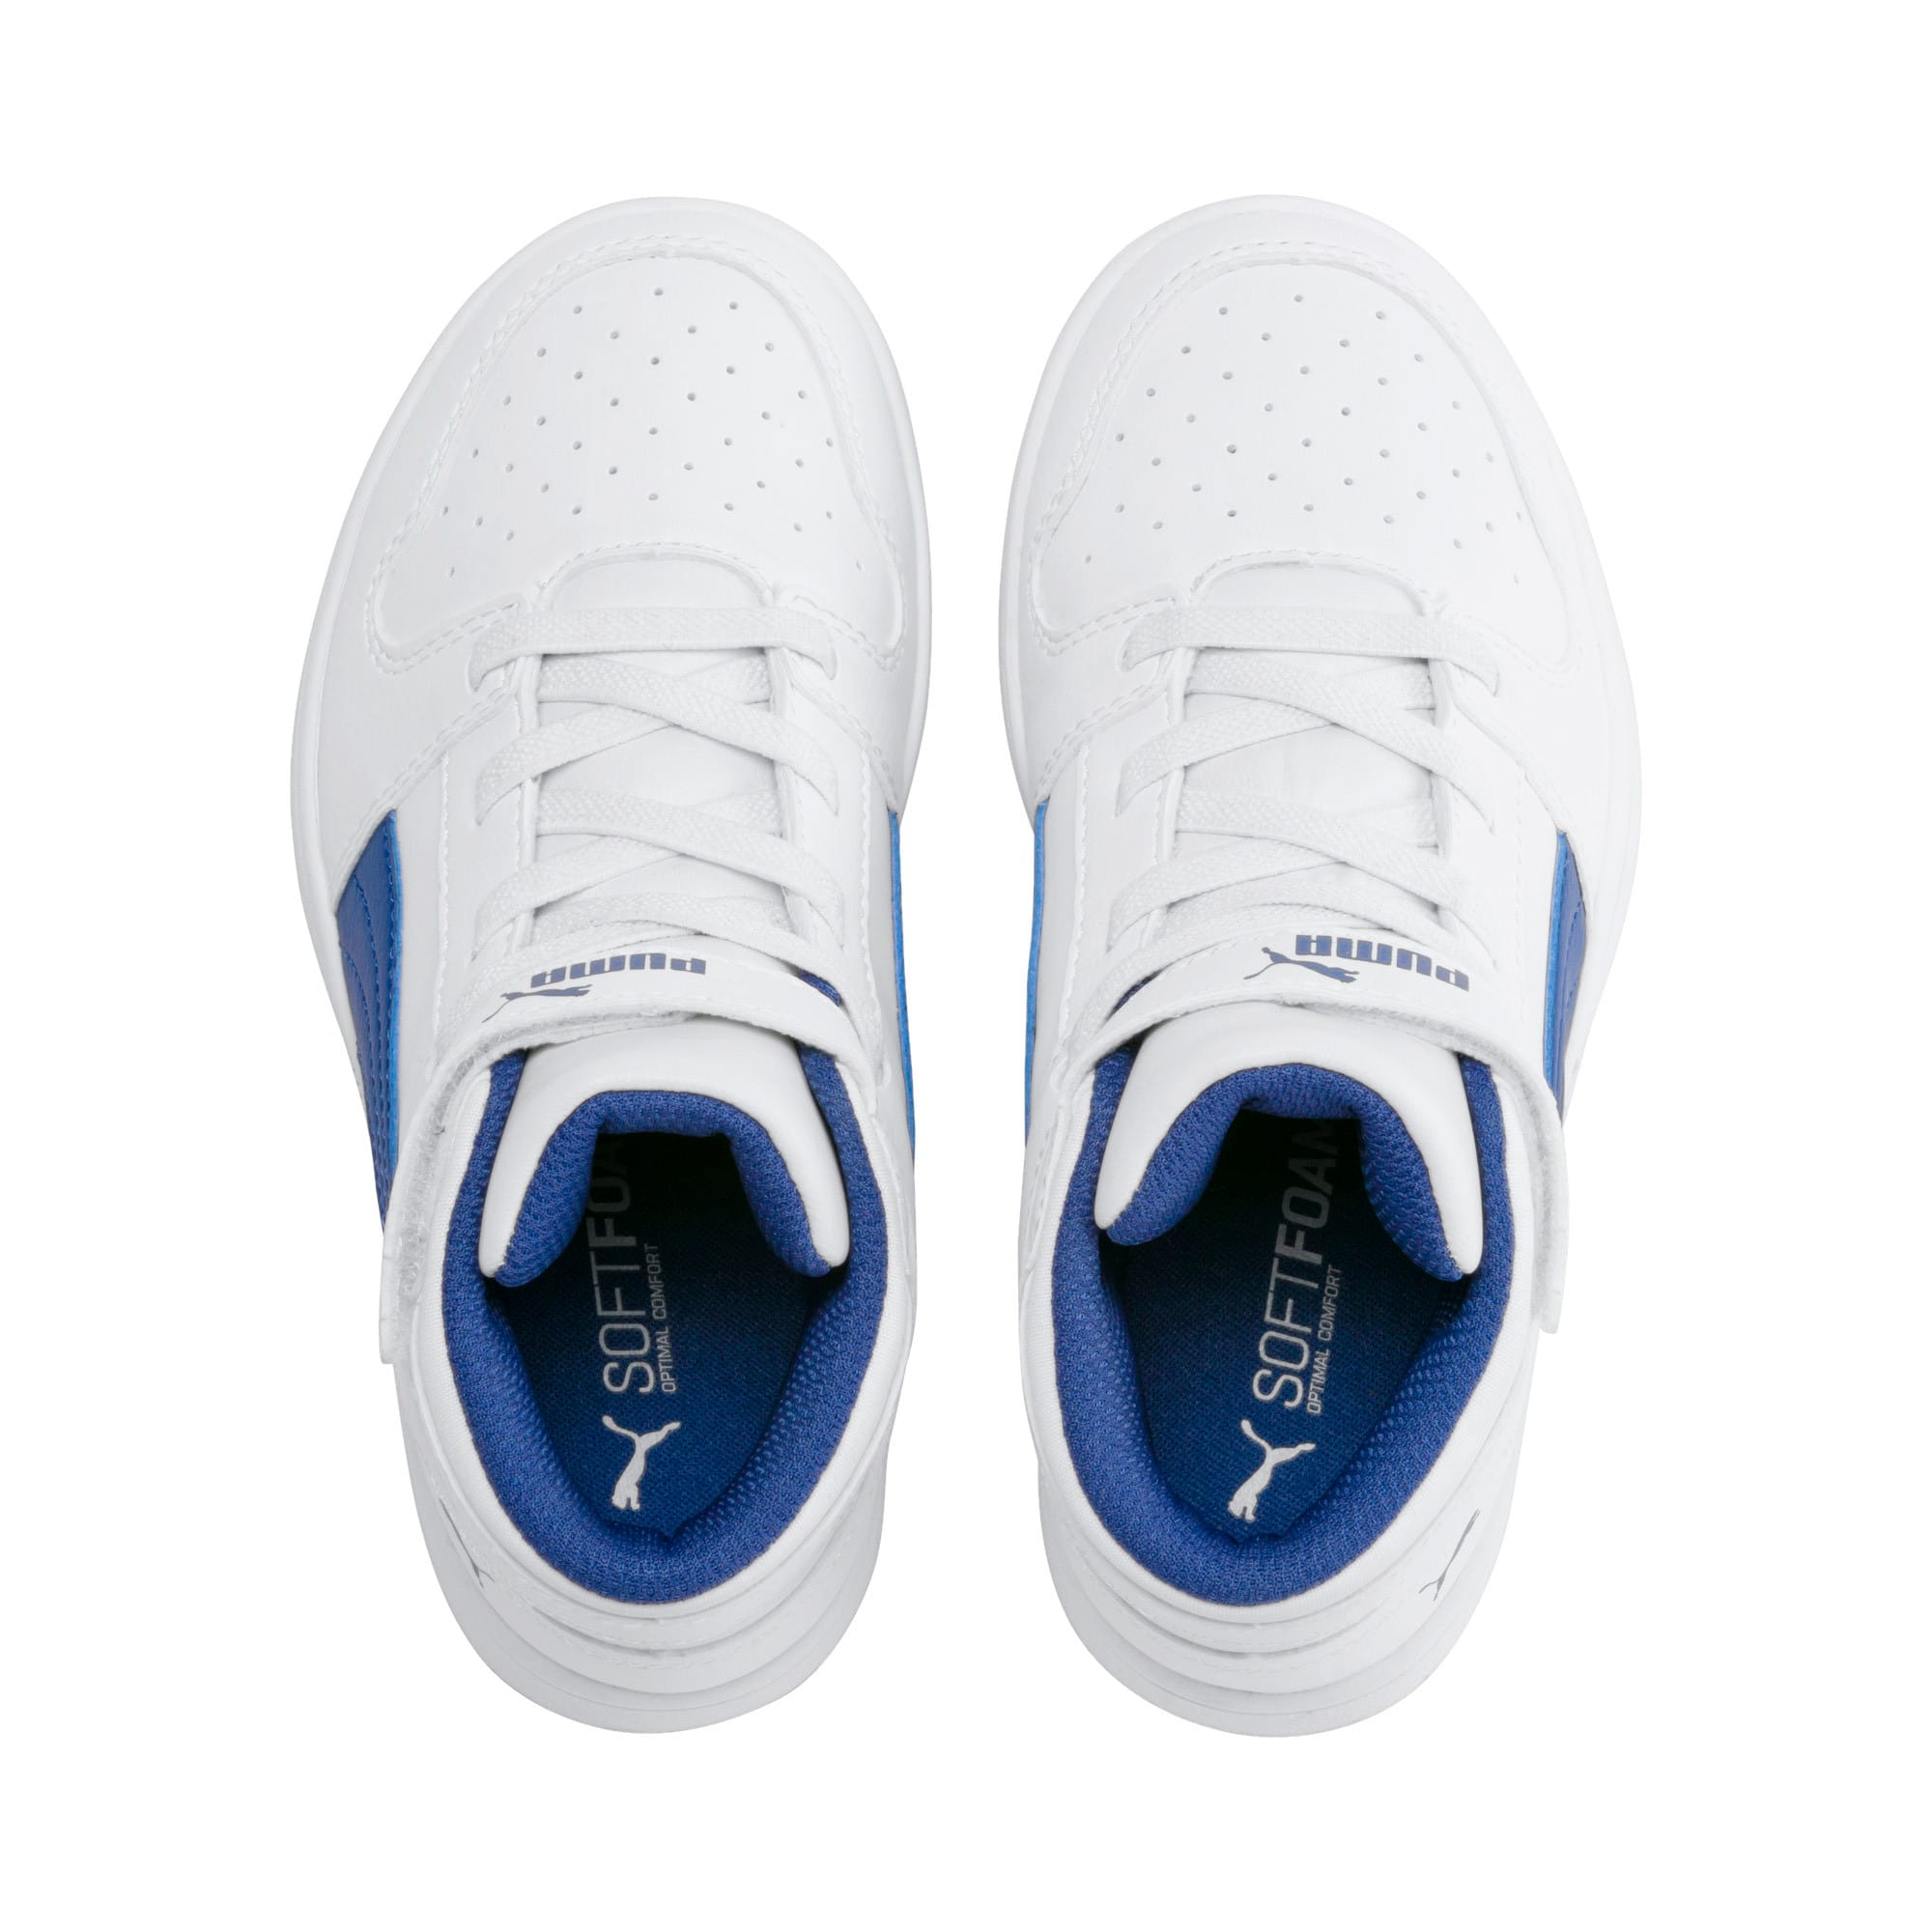 Thumbnail 6 of Rebound Lay-Up SL V Kids' Trainers, Puma White-Galaxy Blue, medium-IND